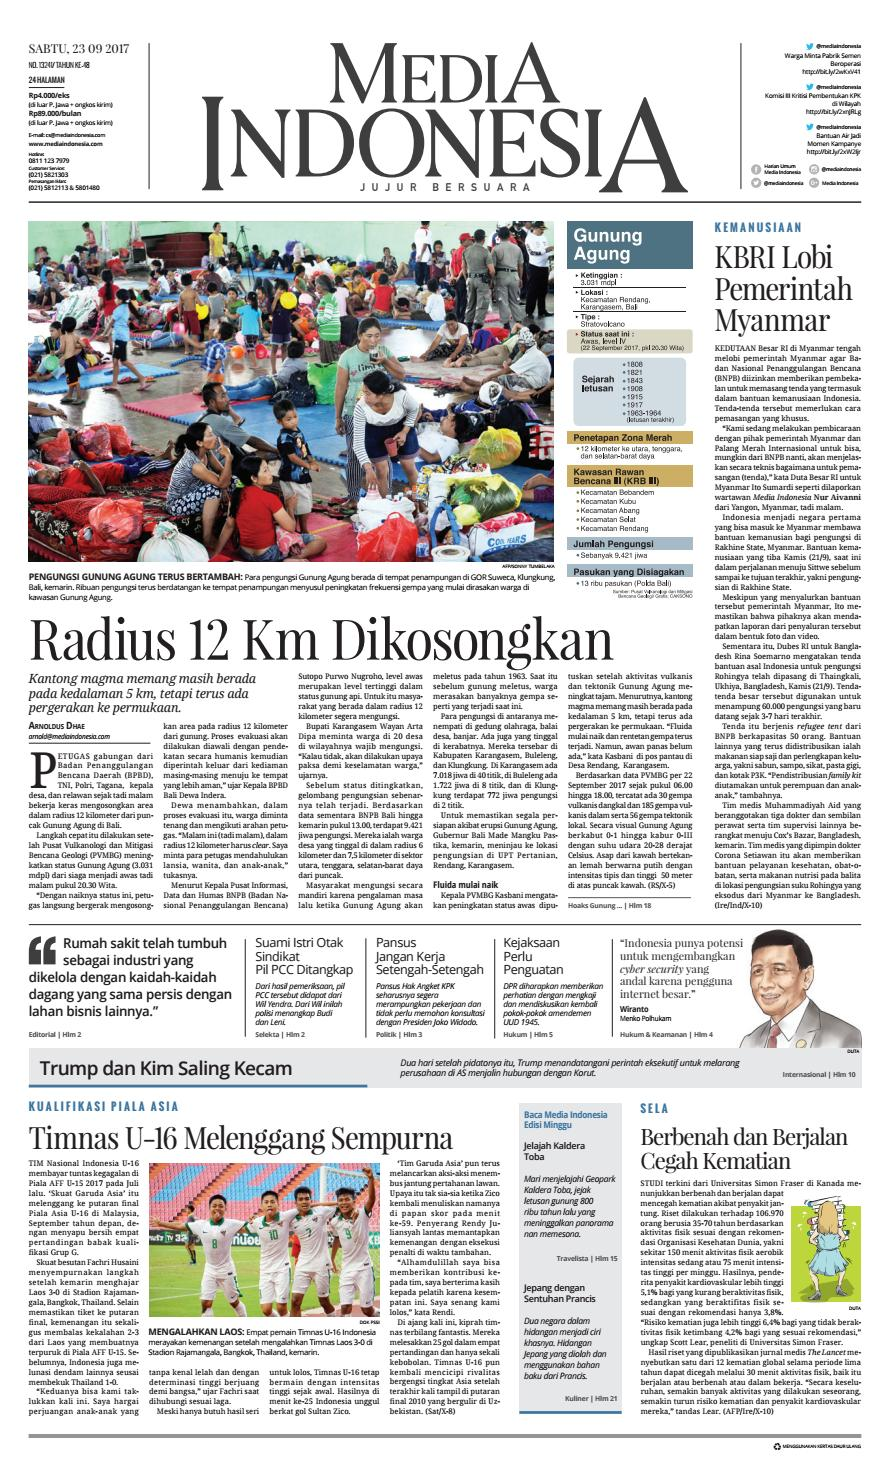 Media indonesia 23 09 2017 23092017073903 by Oppah - issuu ccee0d5ab7